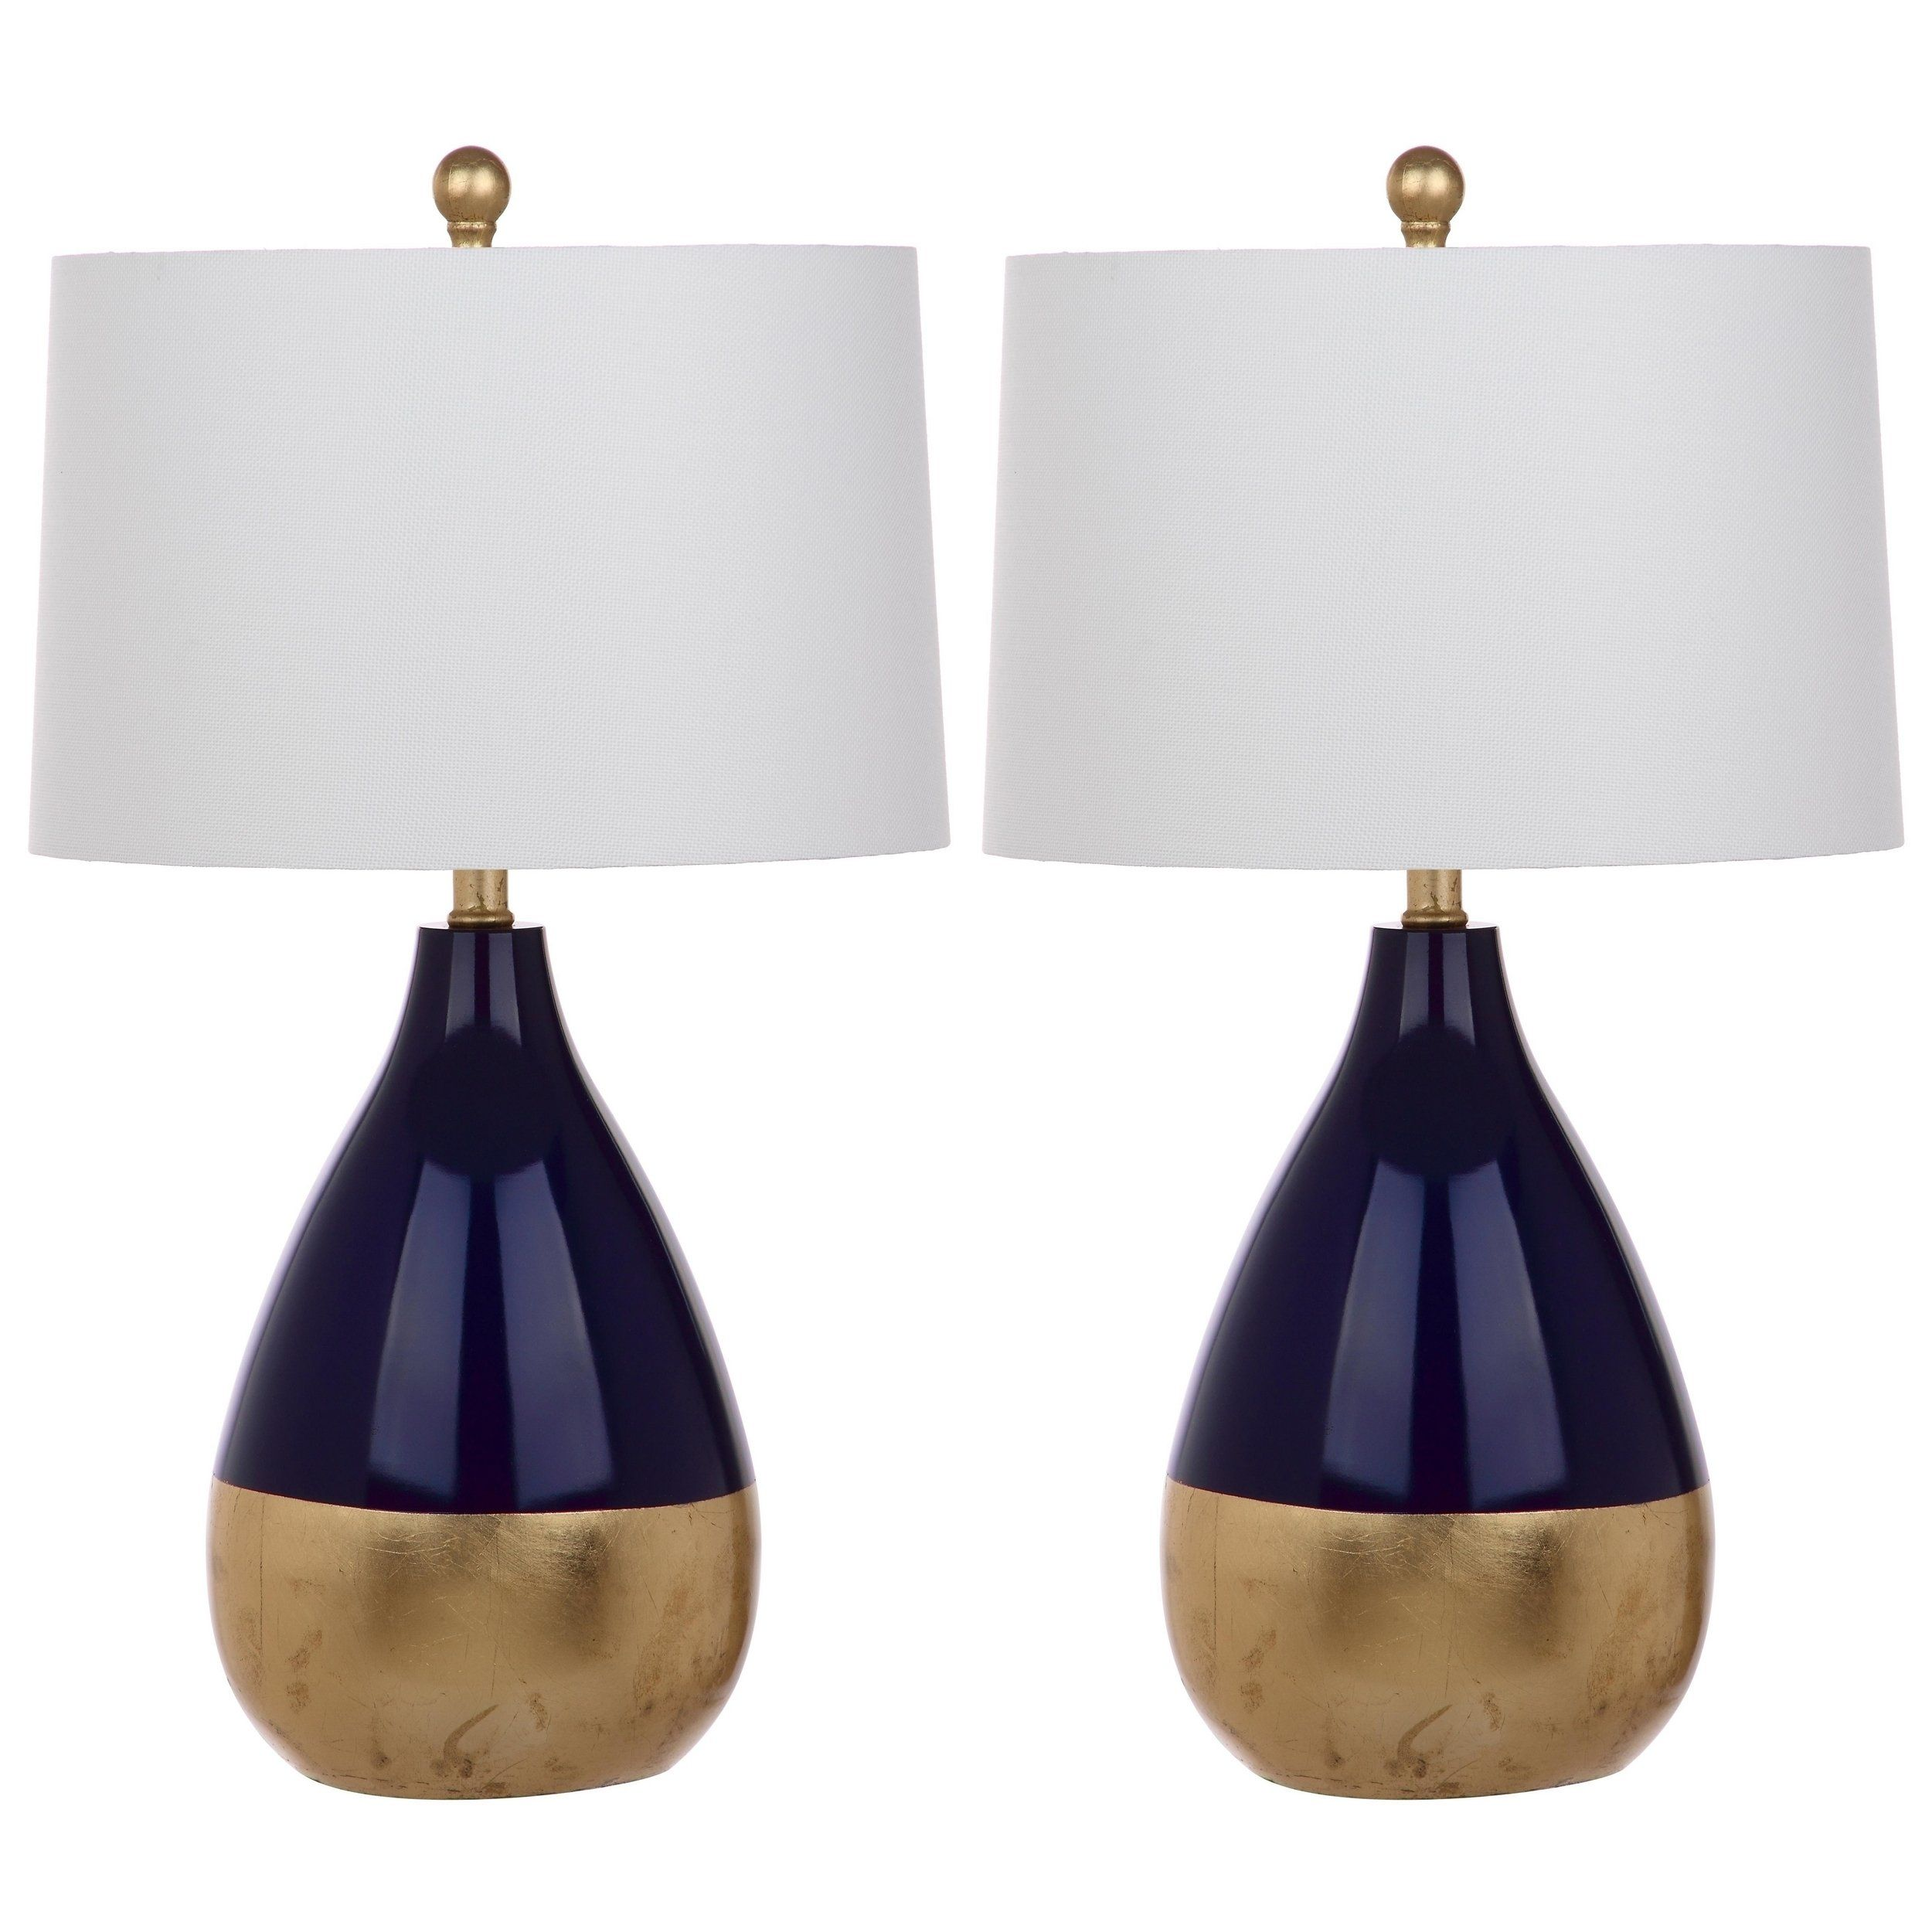 Pin By Sealy Nz On Crown Jewel Gold Table Lamp Gold Living Room